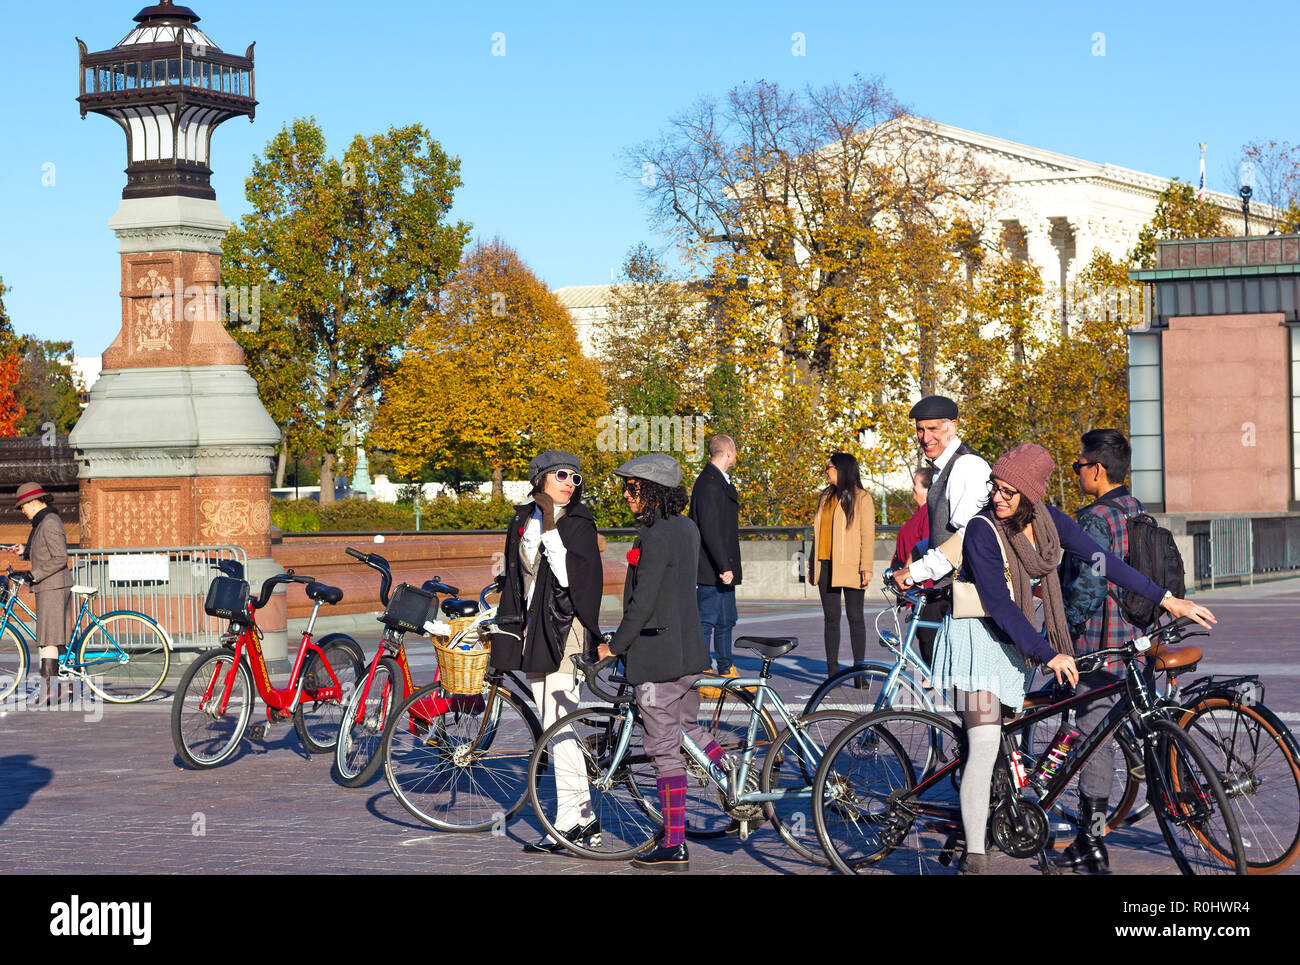 Washington DC, USA. 4th Nov 2018. Participants of DC's 2nd Tweed Ride enjoy a beautiful Sunday after the event on the US Capitol grounds. The Ride of cyclists who refuse to endure anymore spandex and feel great to spin through our beautiful streets in the finest most dapper attire. Credit: Andrei Medvedev/Alamy Live News - Stock Image